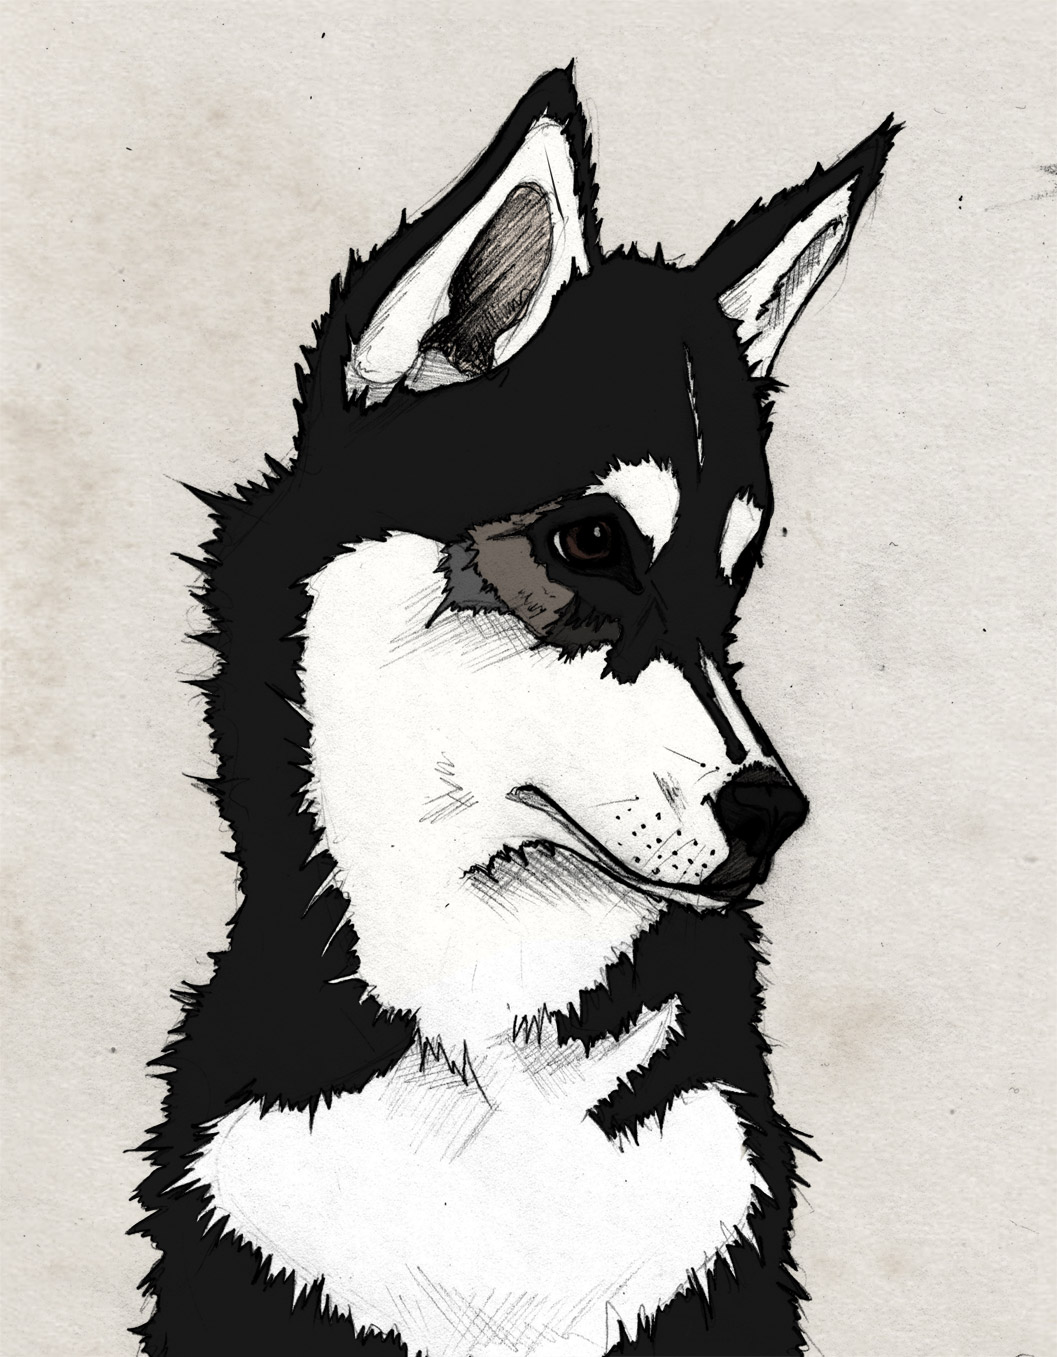 Nico, Sketch, Illustration, Husky, Siberian Husky, Puppy, Black, Graphic, Photoshop